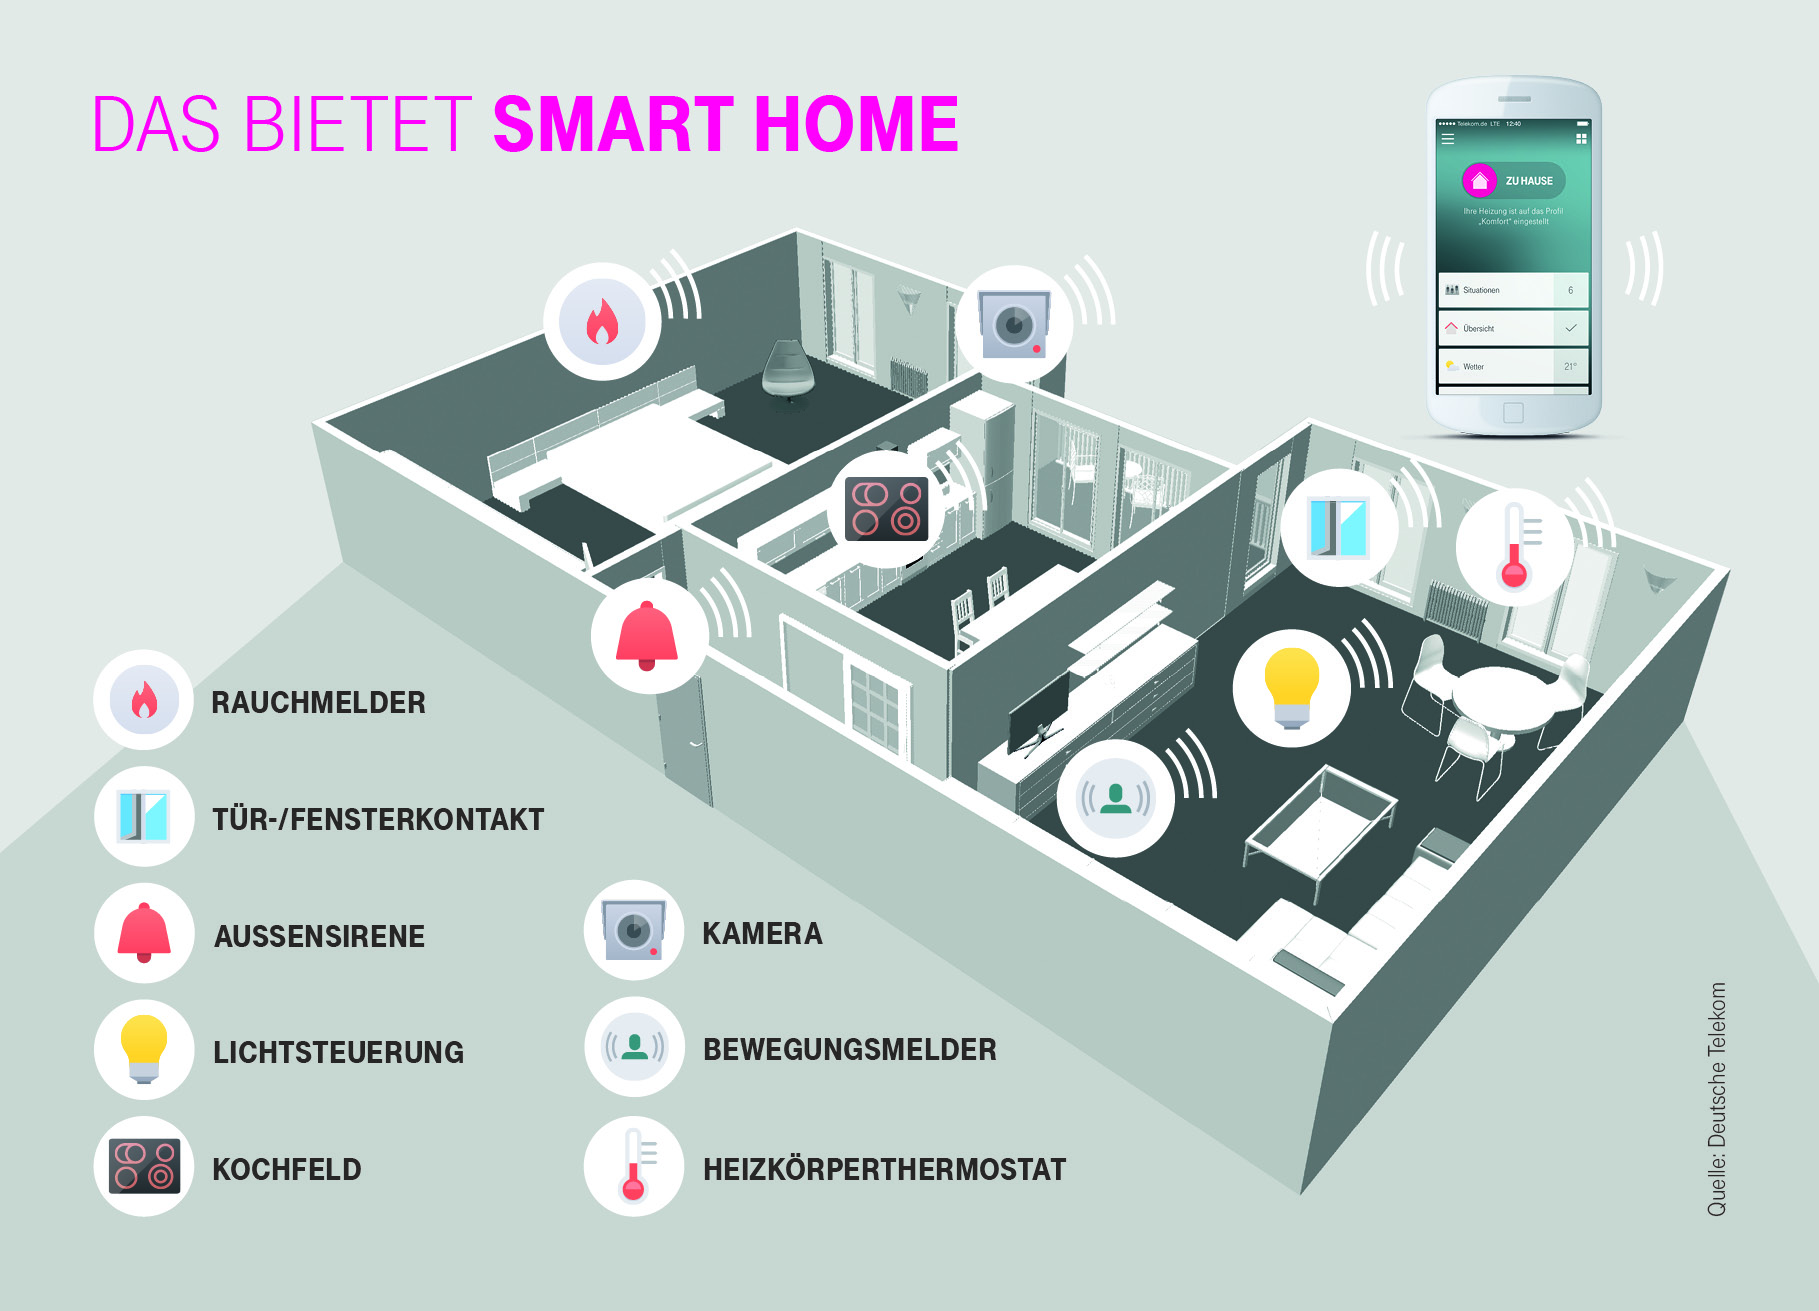 telekom router speedport smart steuert jetzt das smart home euronics trendblog. Black Bedroom Furniture Sets. Home Design Ideas